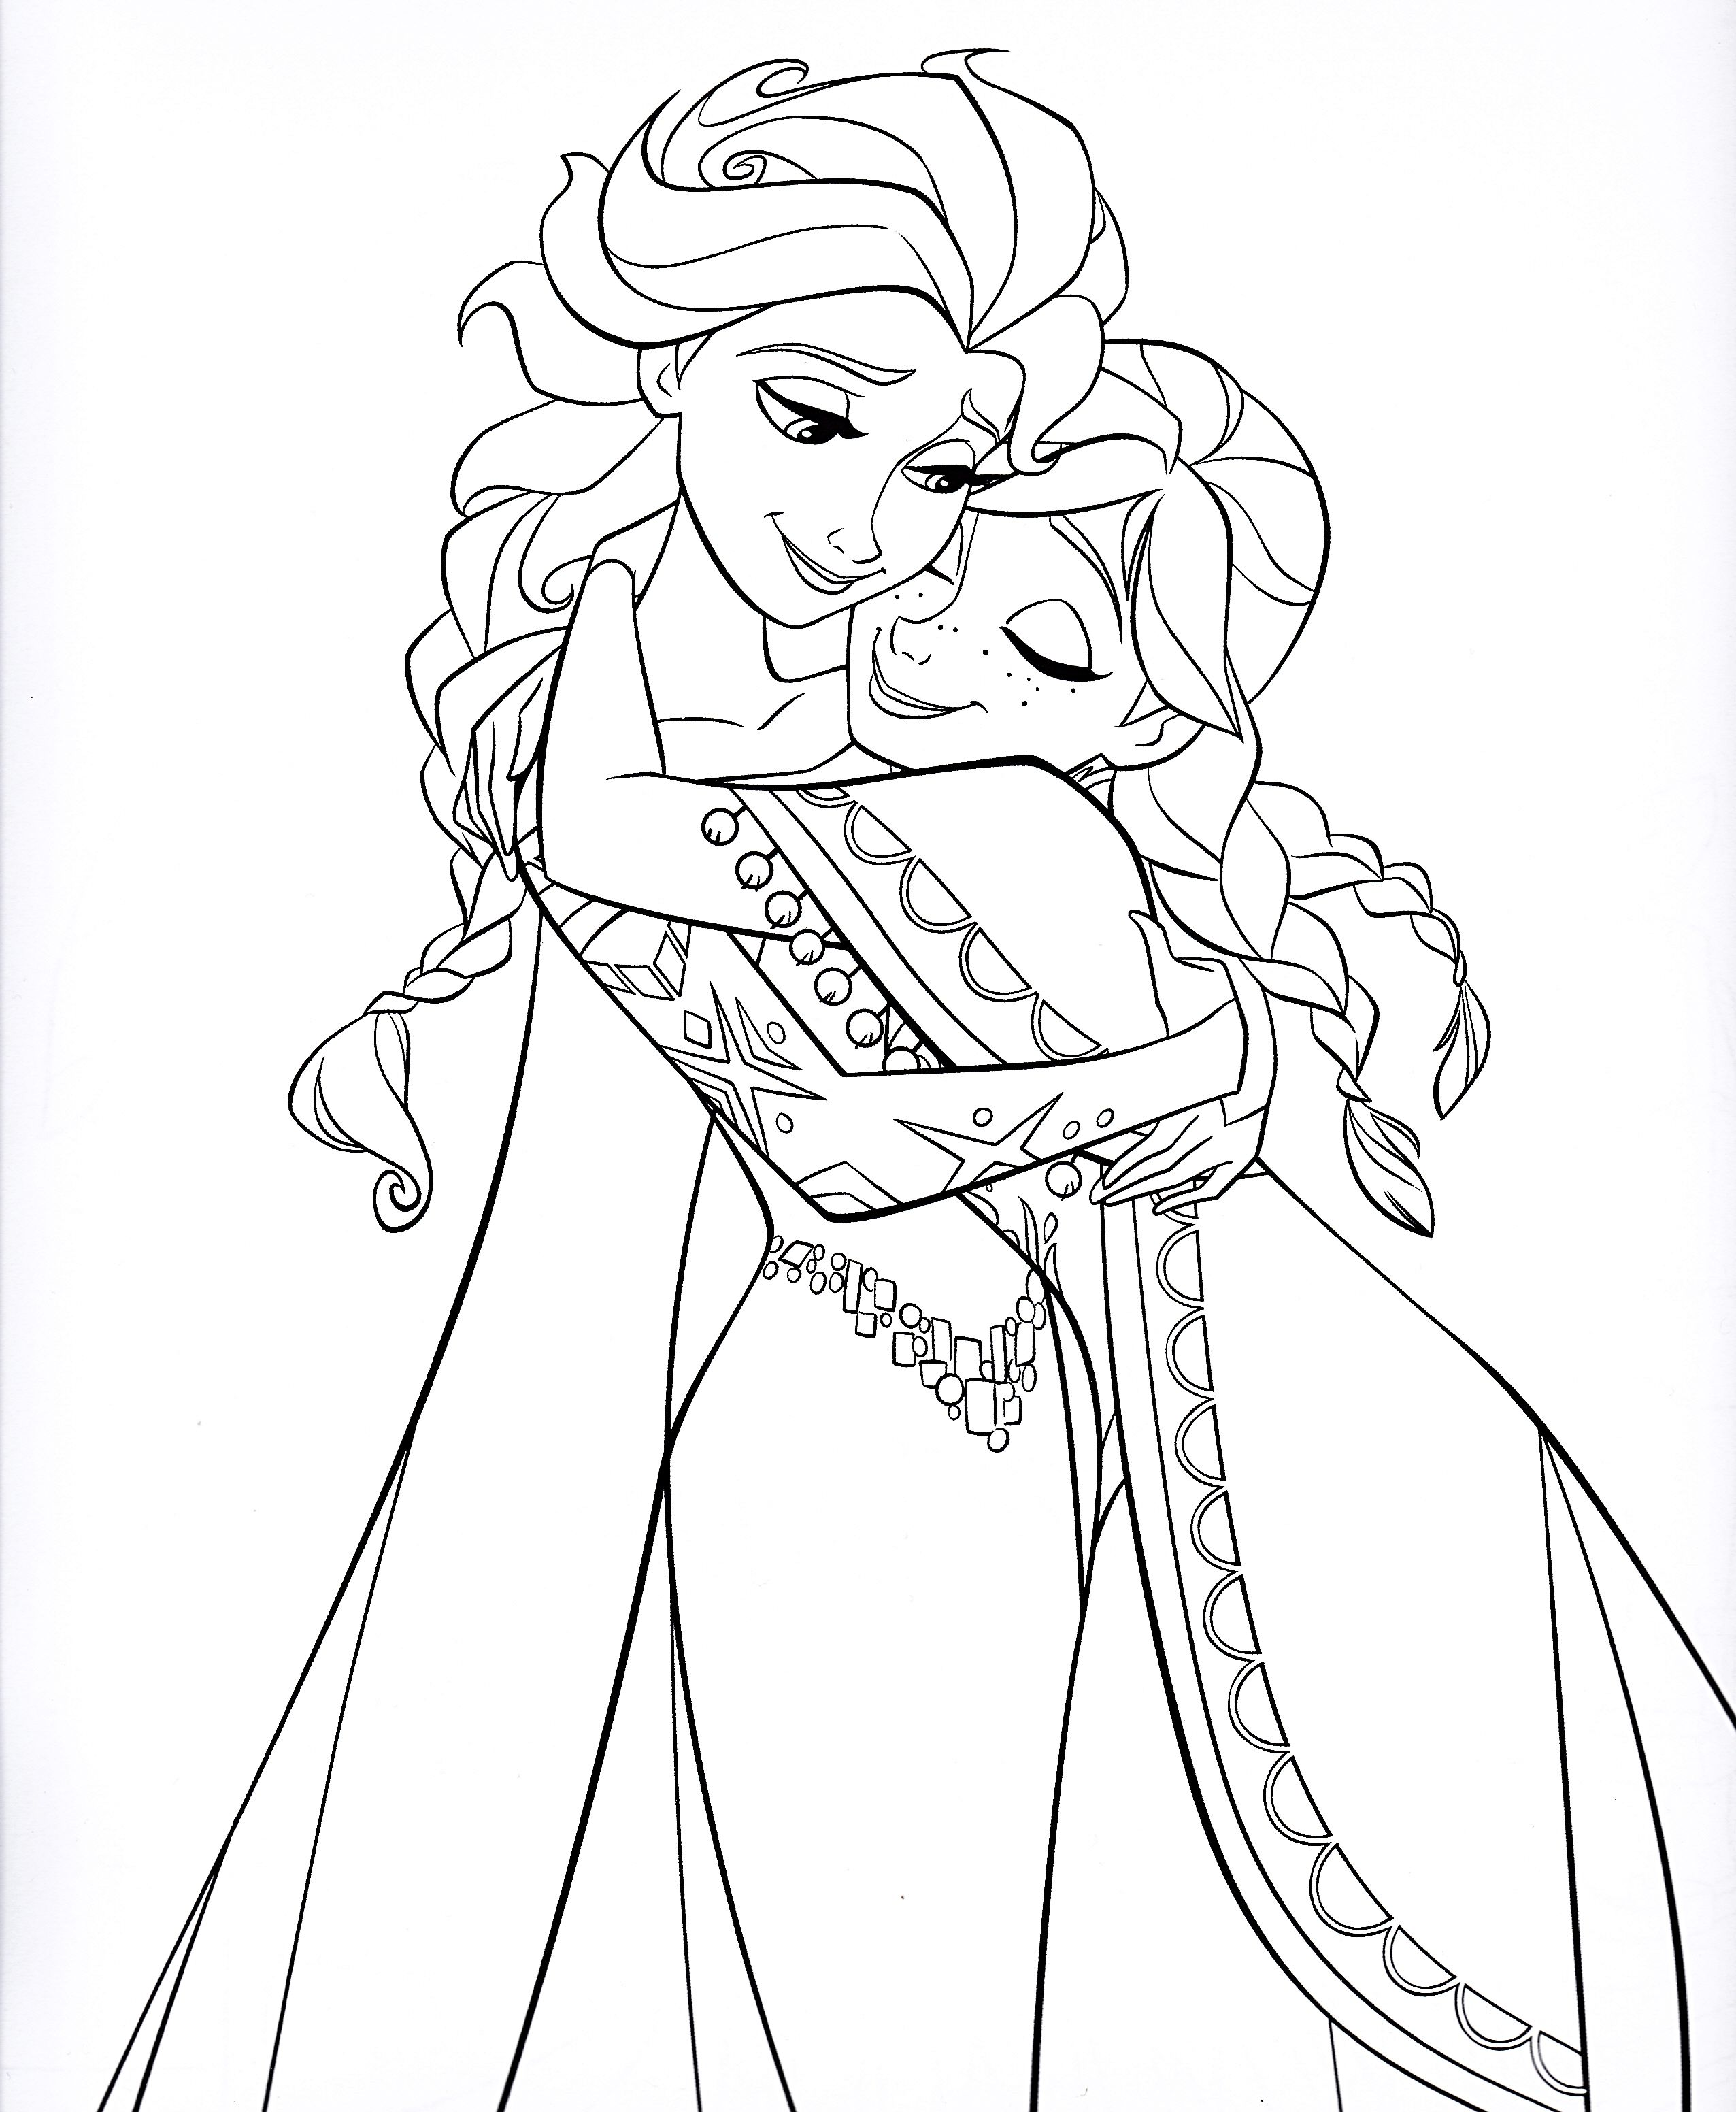 disney frozen coloring sheets walt disney coloring pages queen on coloring games anna - Interactive Coloring Pages Disney